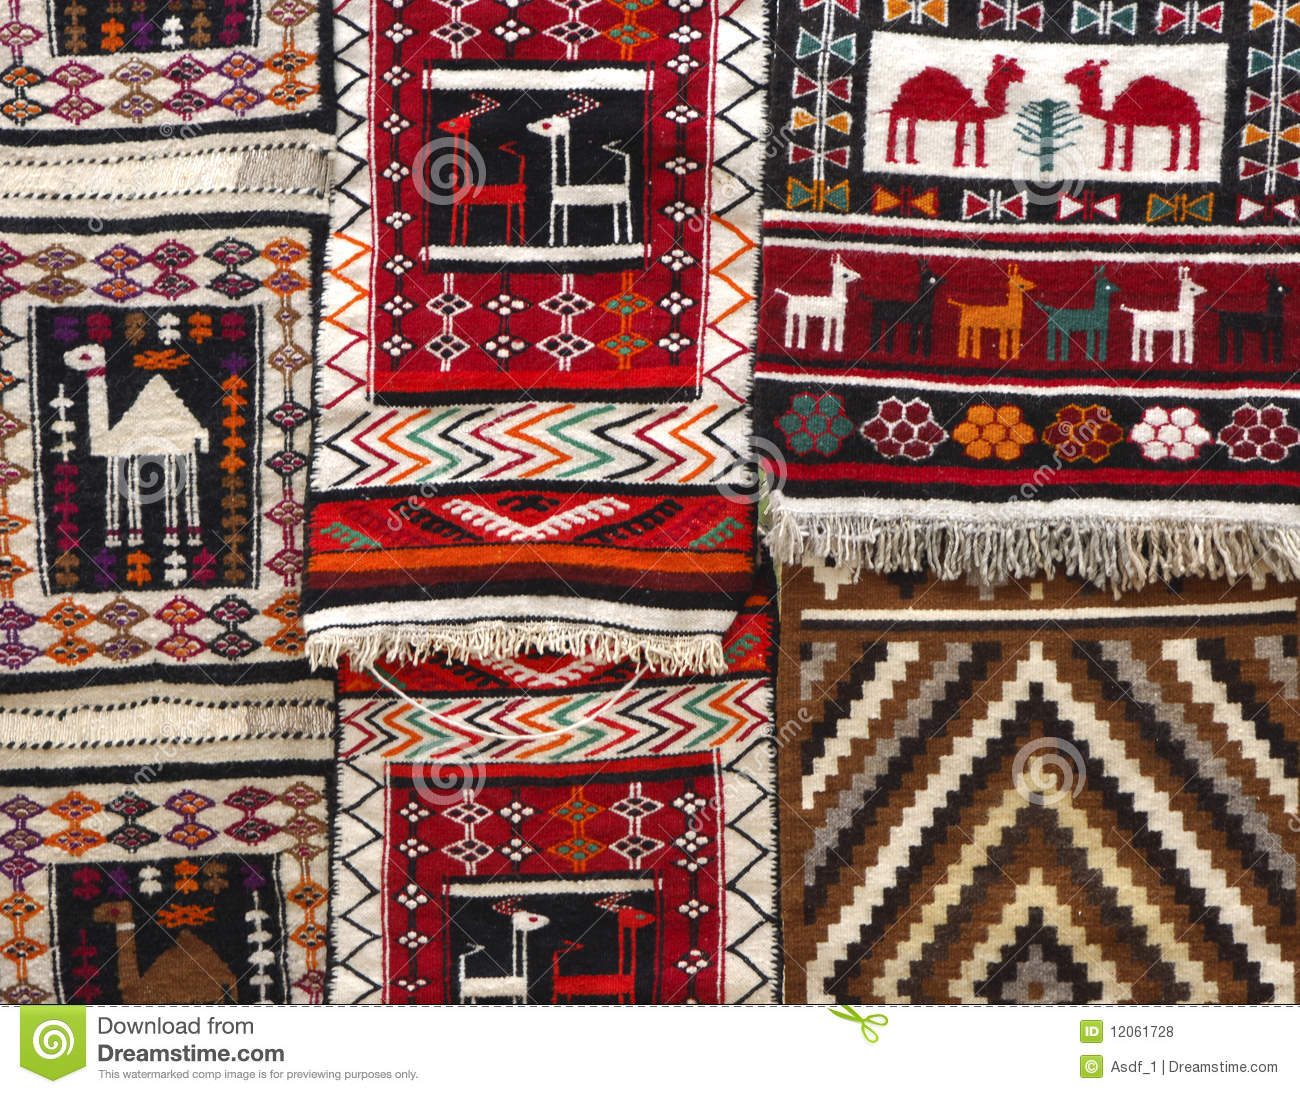 Arabische Teppiche Arab Carpets Royalty Free Stock Photos Image 12061728